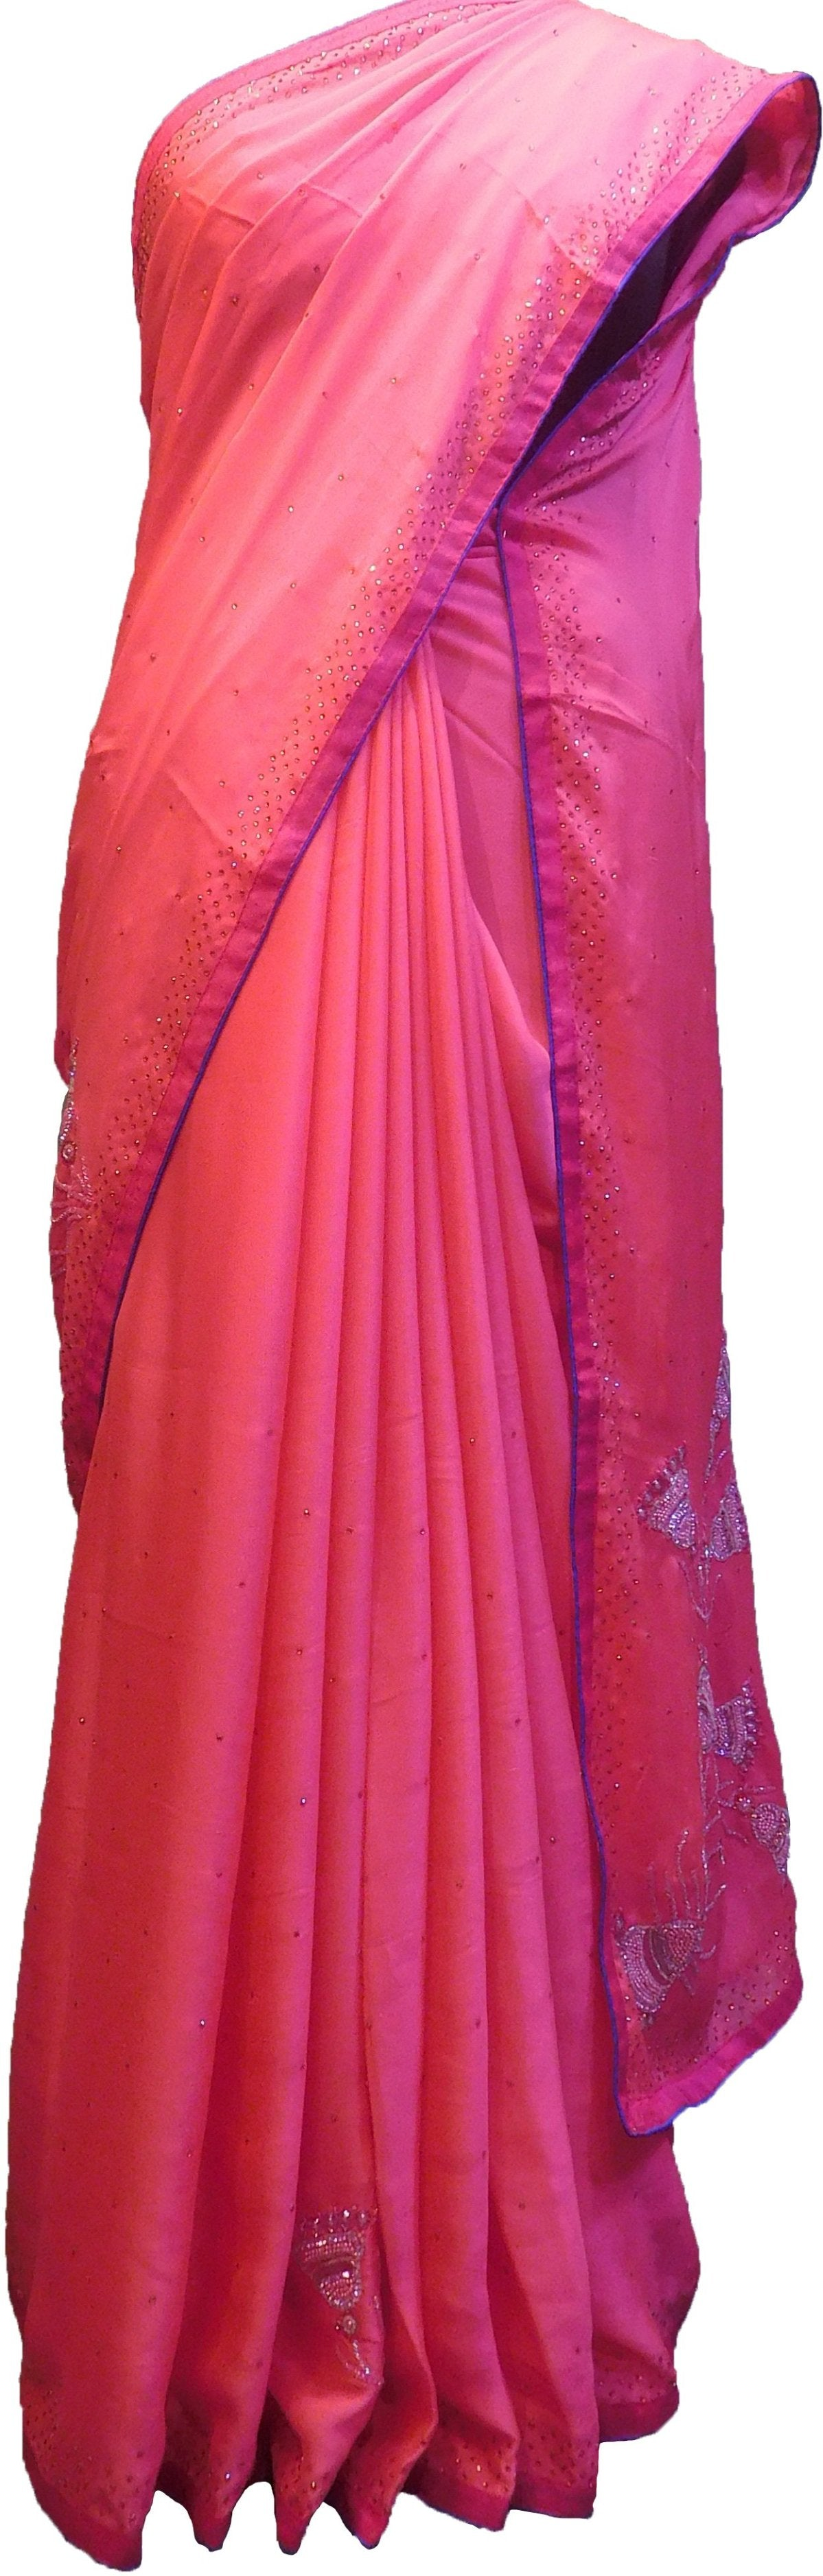 SMSAREE Pink Designer Wedding Partywear Crepe (Rangoli) Stone Beads Cutdana Thread & Bullion Hand Embroidery Work Bridal Saree Sari With Blouse Piece F215